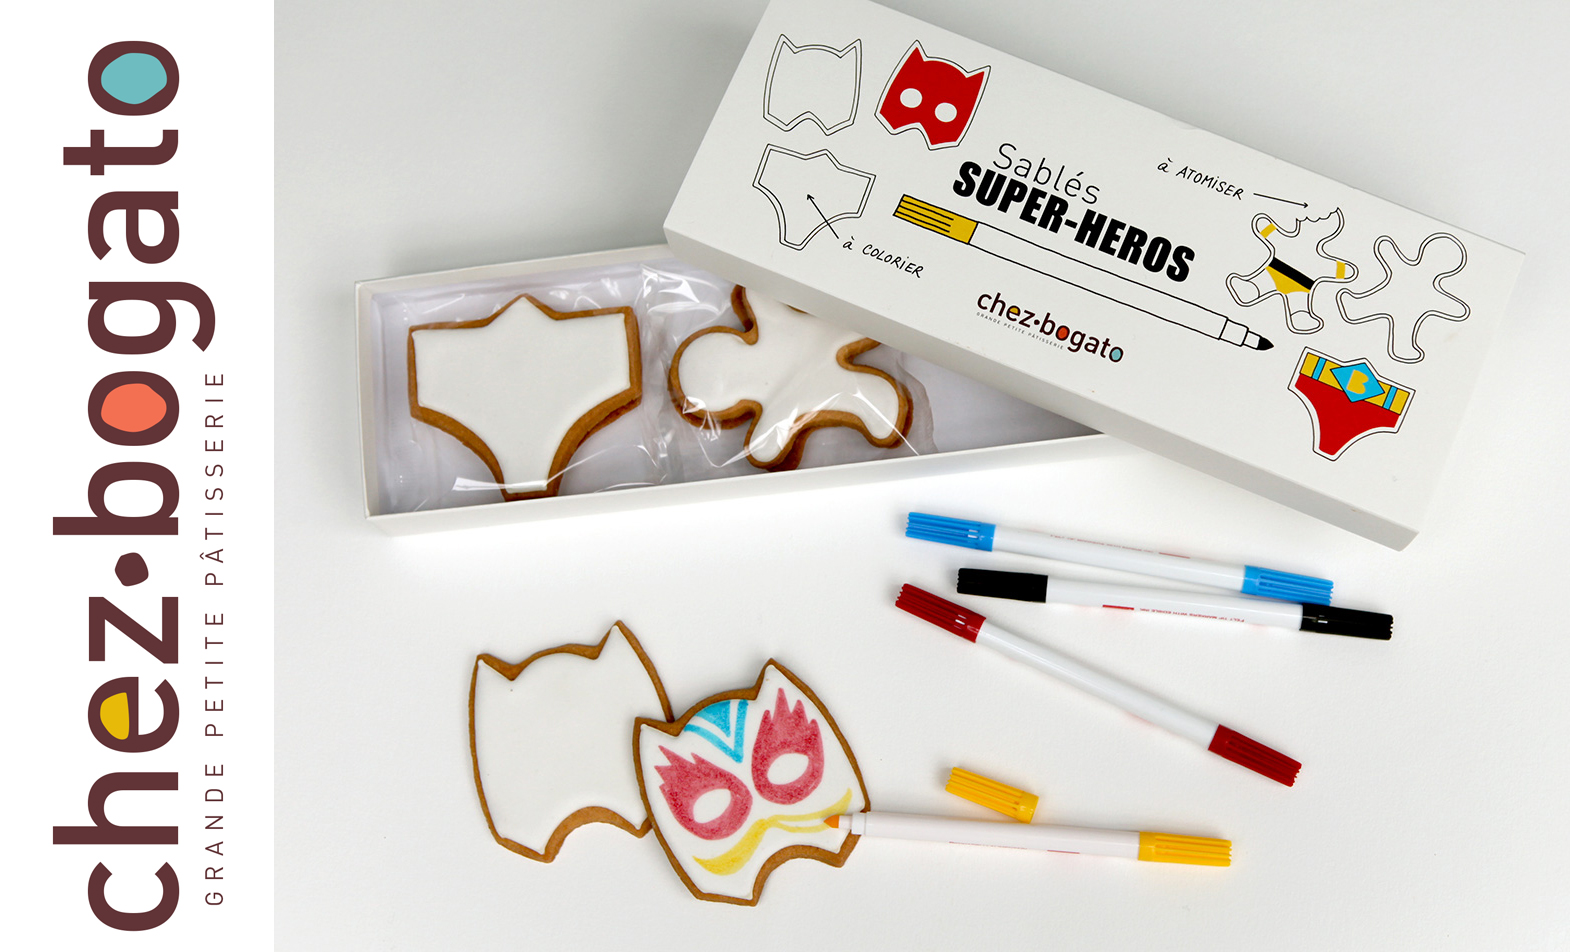 superheros cookies by Bogato